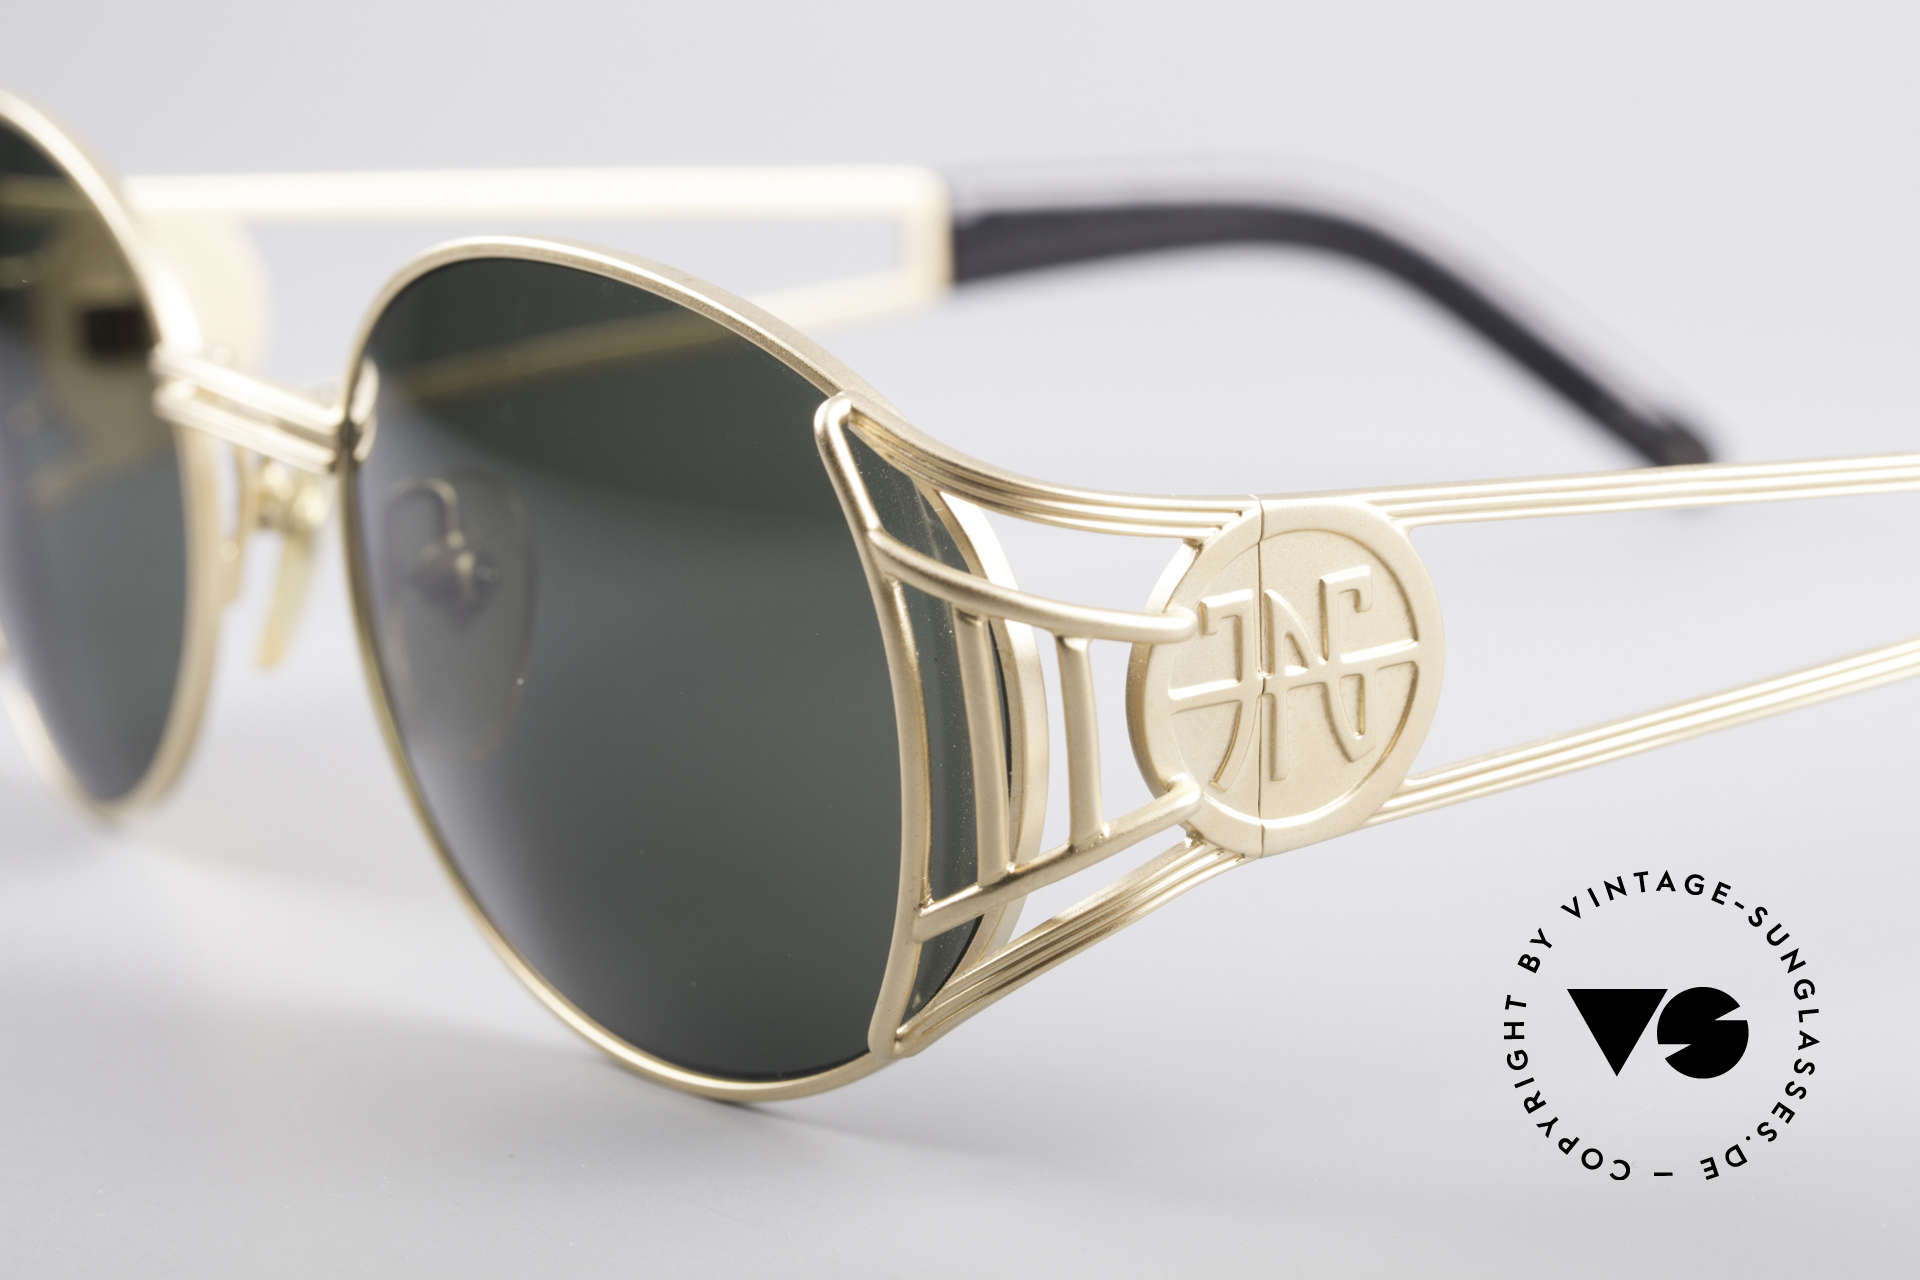 """Jean Paul Gaultier 58-6102 Steampunk Designer Shades, never worn (like all our """"old"""" Gaultier sunglasses), Made for Men and Women"""